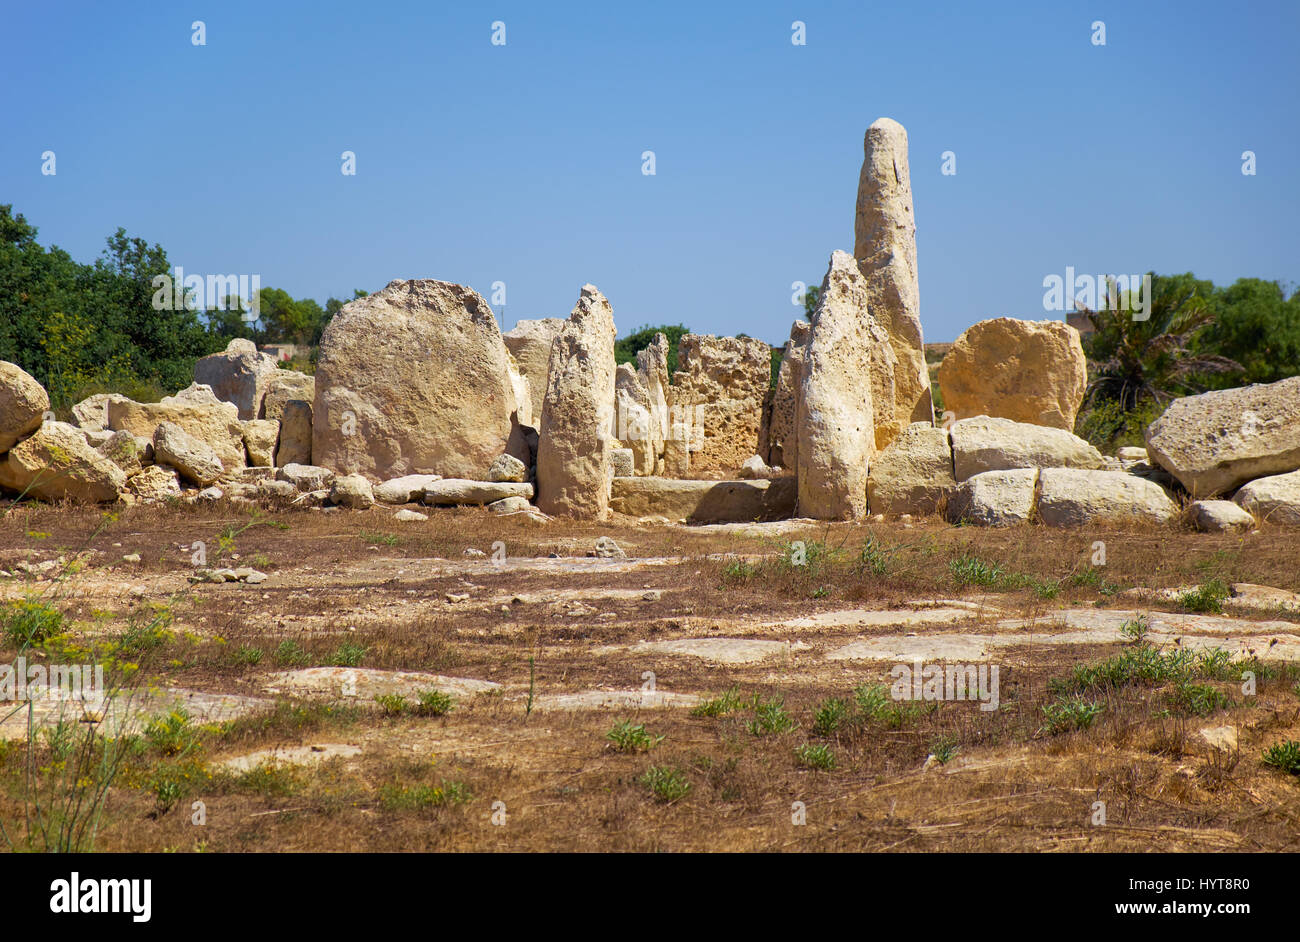 The big orthostats forming entrance to the oldest part of megalithic temple of Hagar Qim, the Northen temple, Malta Stock Photo